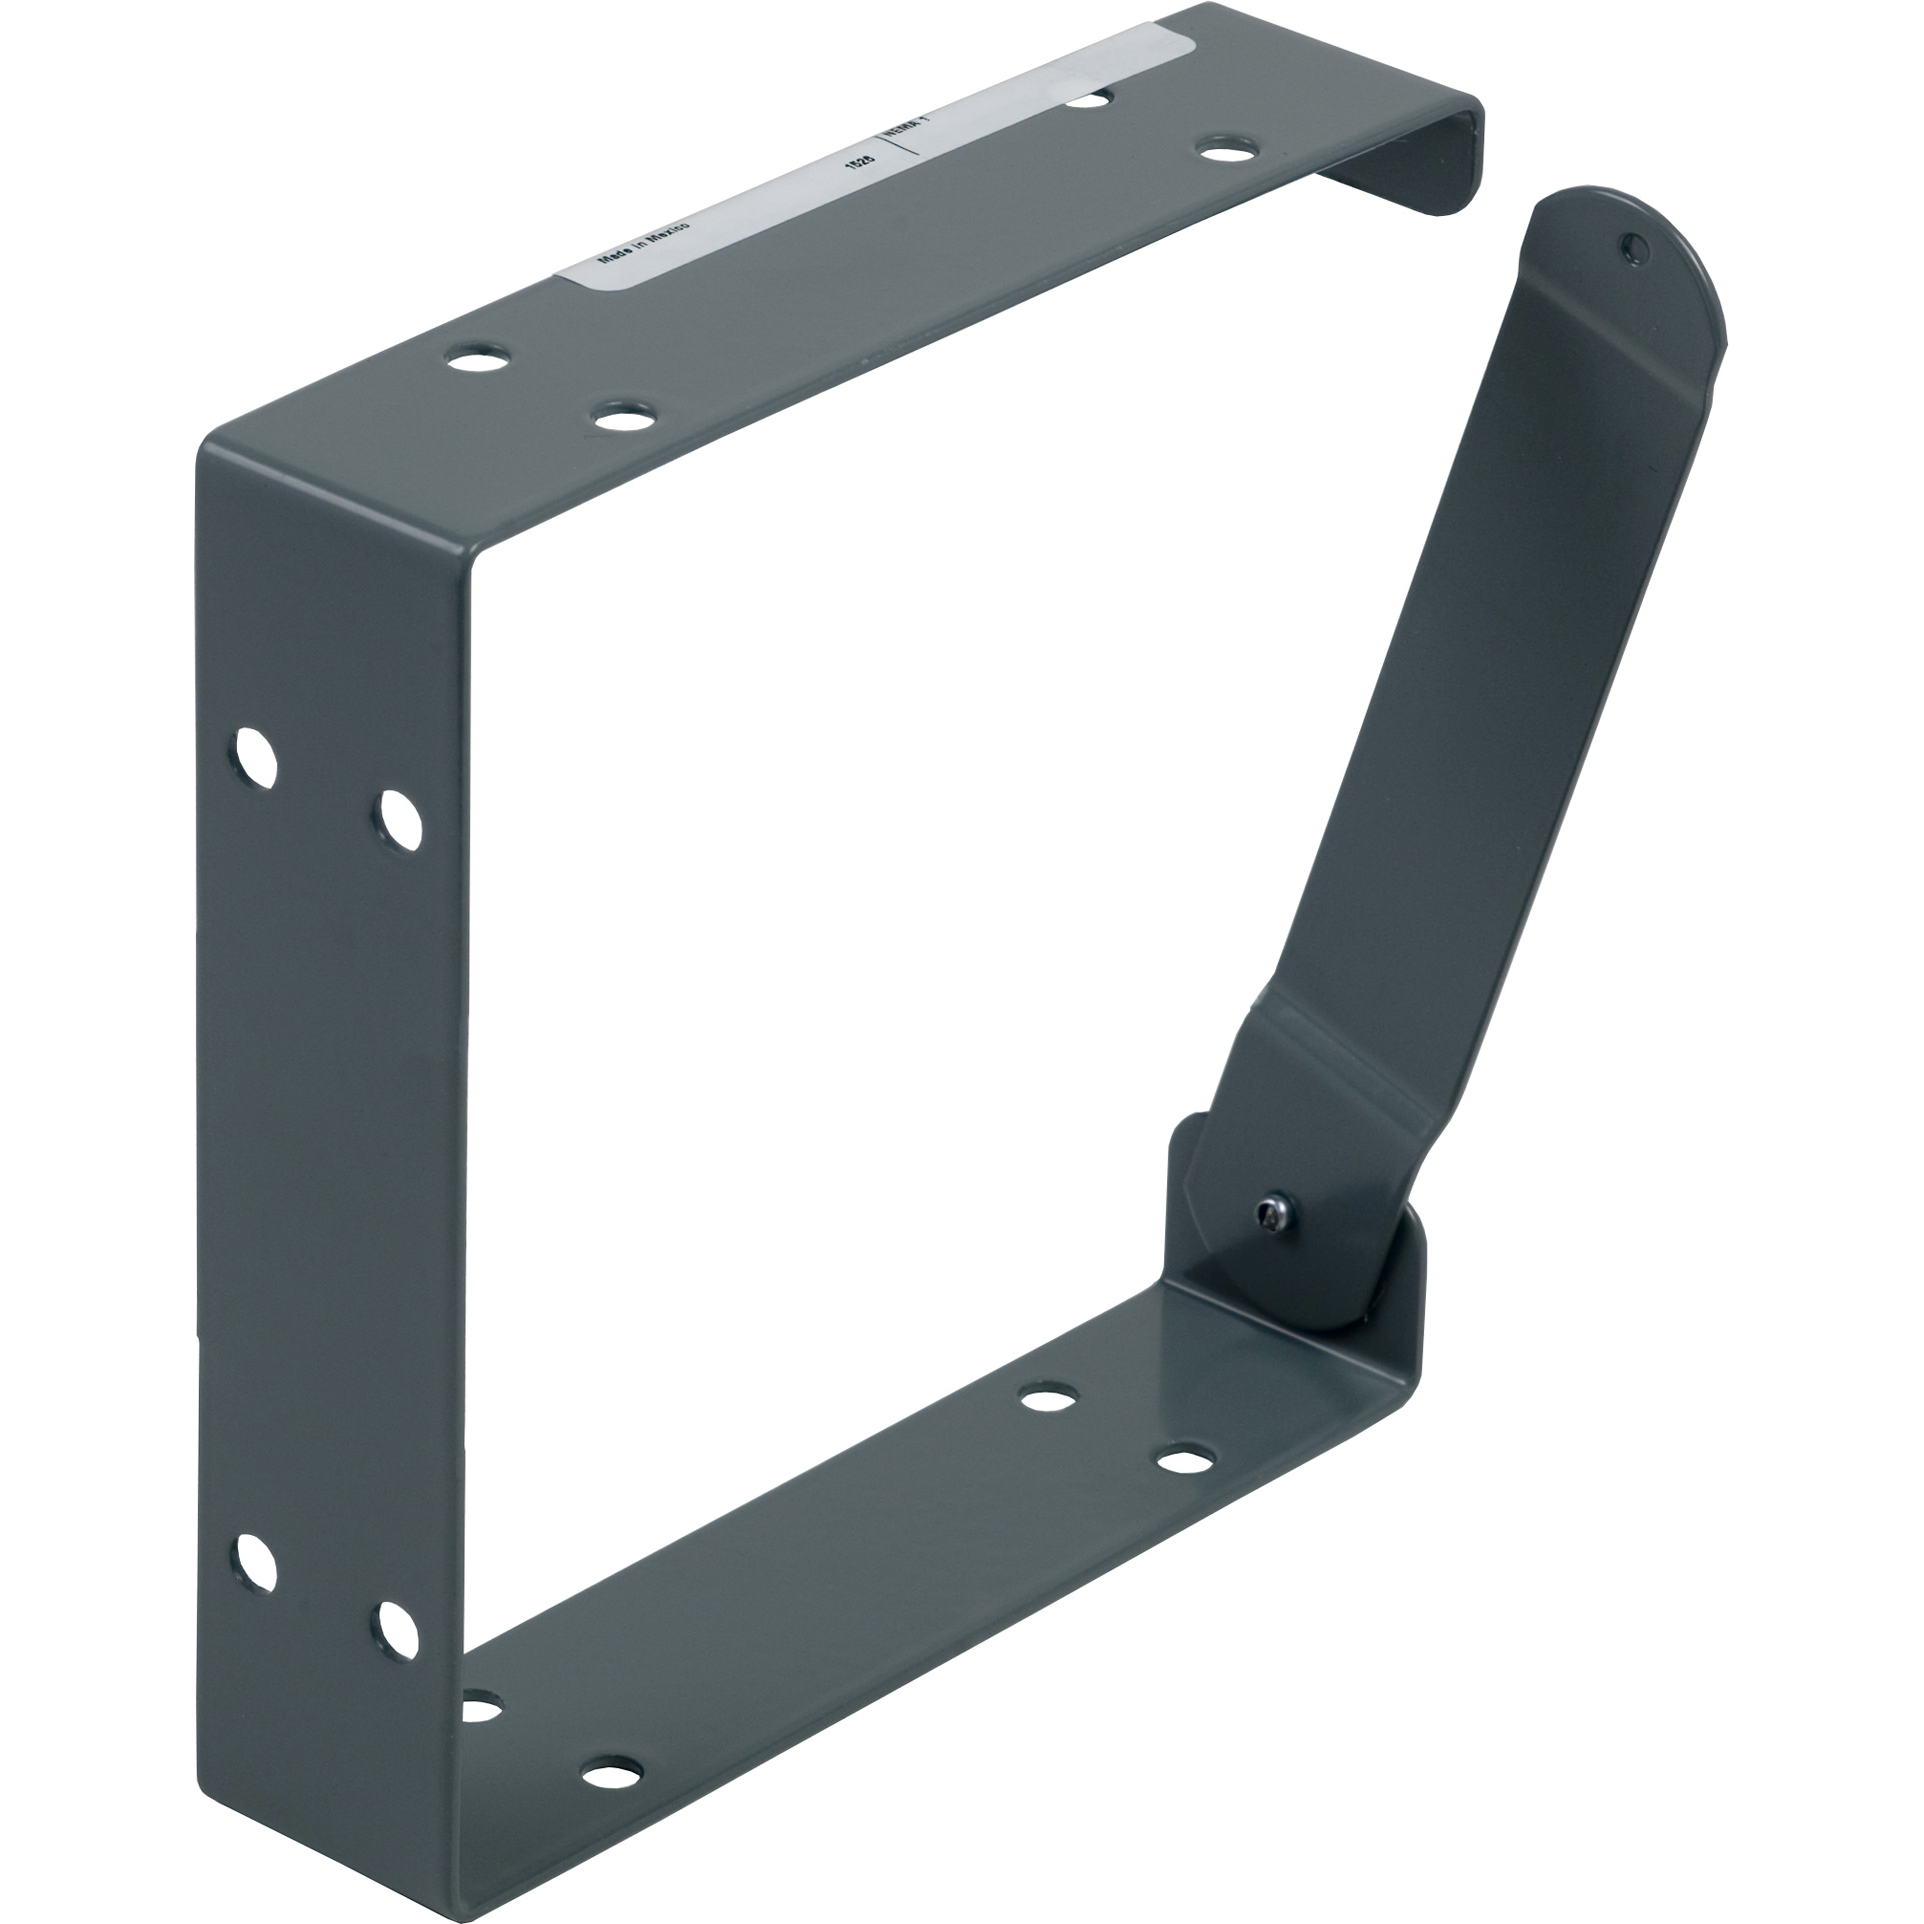 SQUARE D LDB6C : WWAY 6 X 6-N1 PAINT-(PAINTED) CONNECTOR